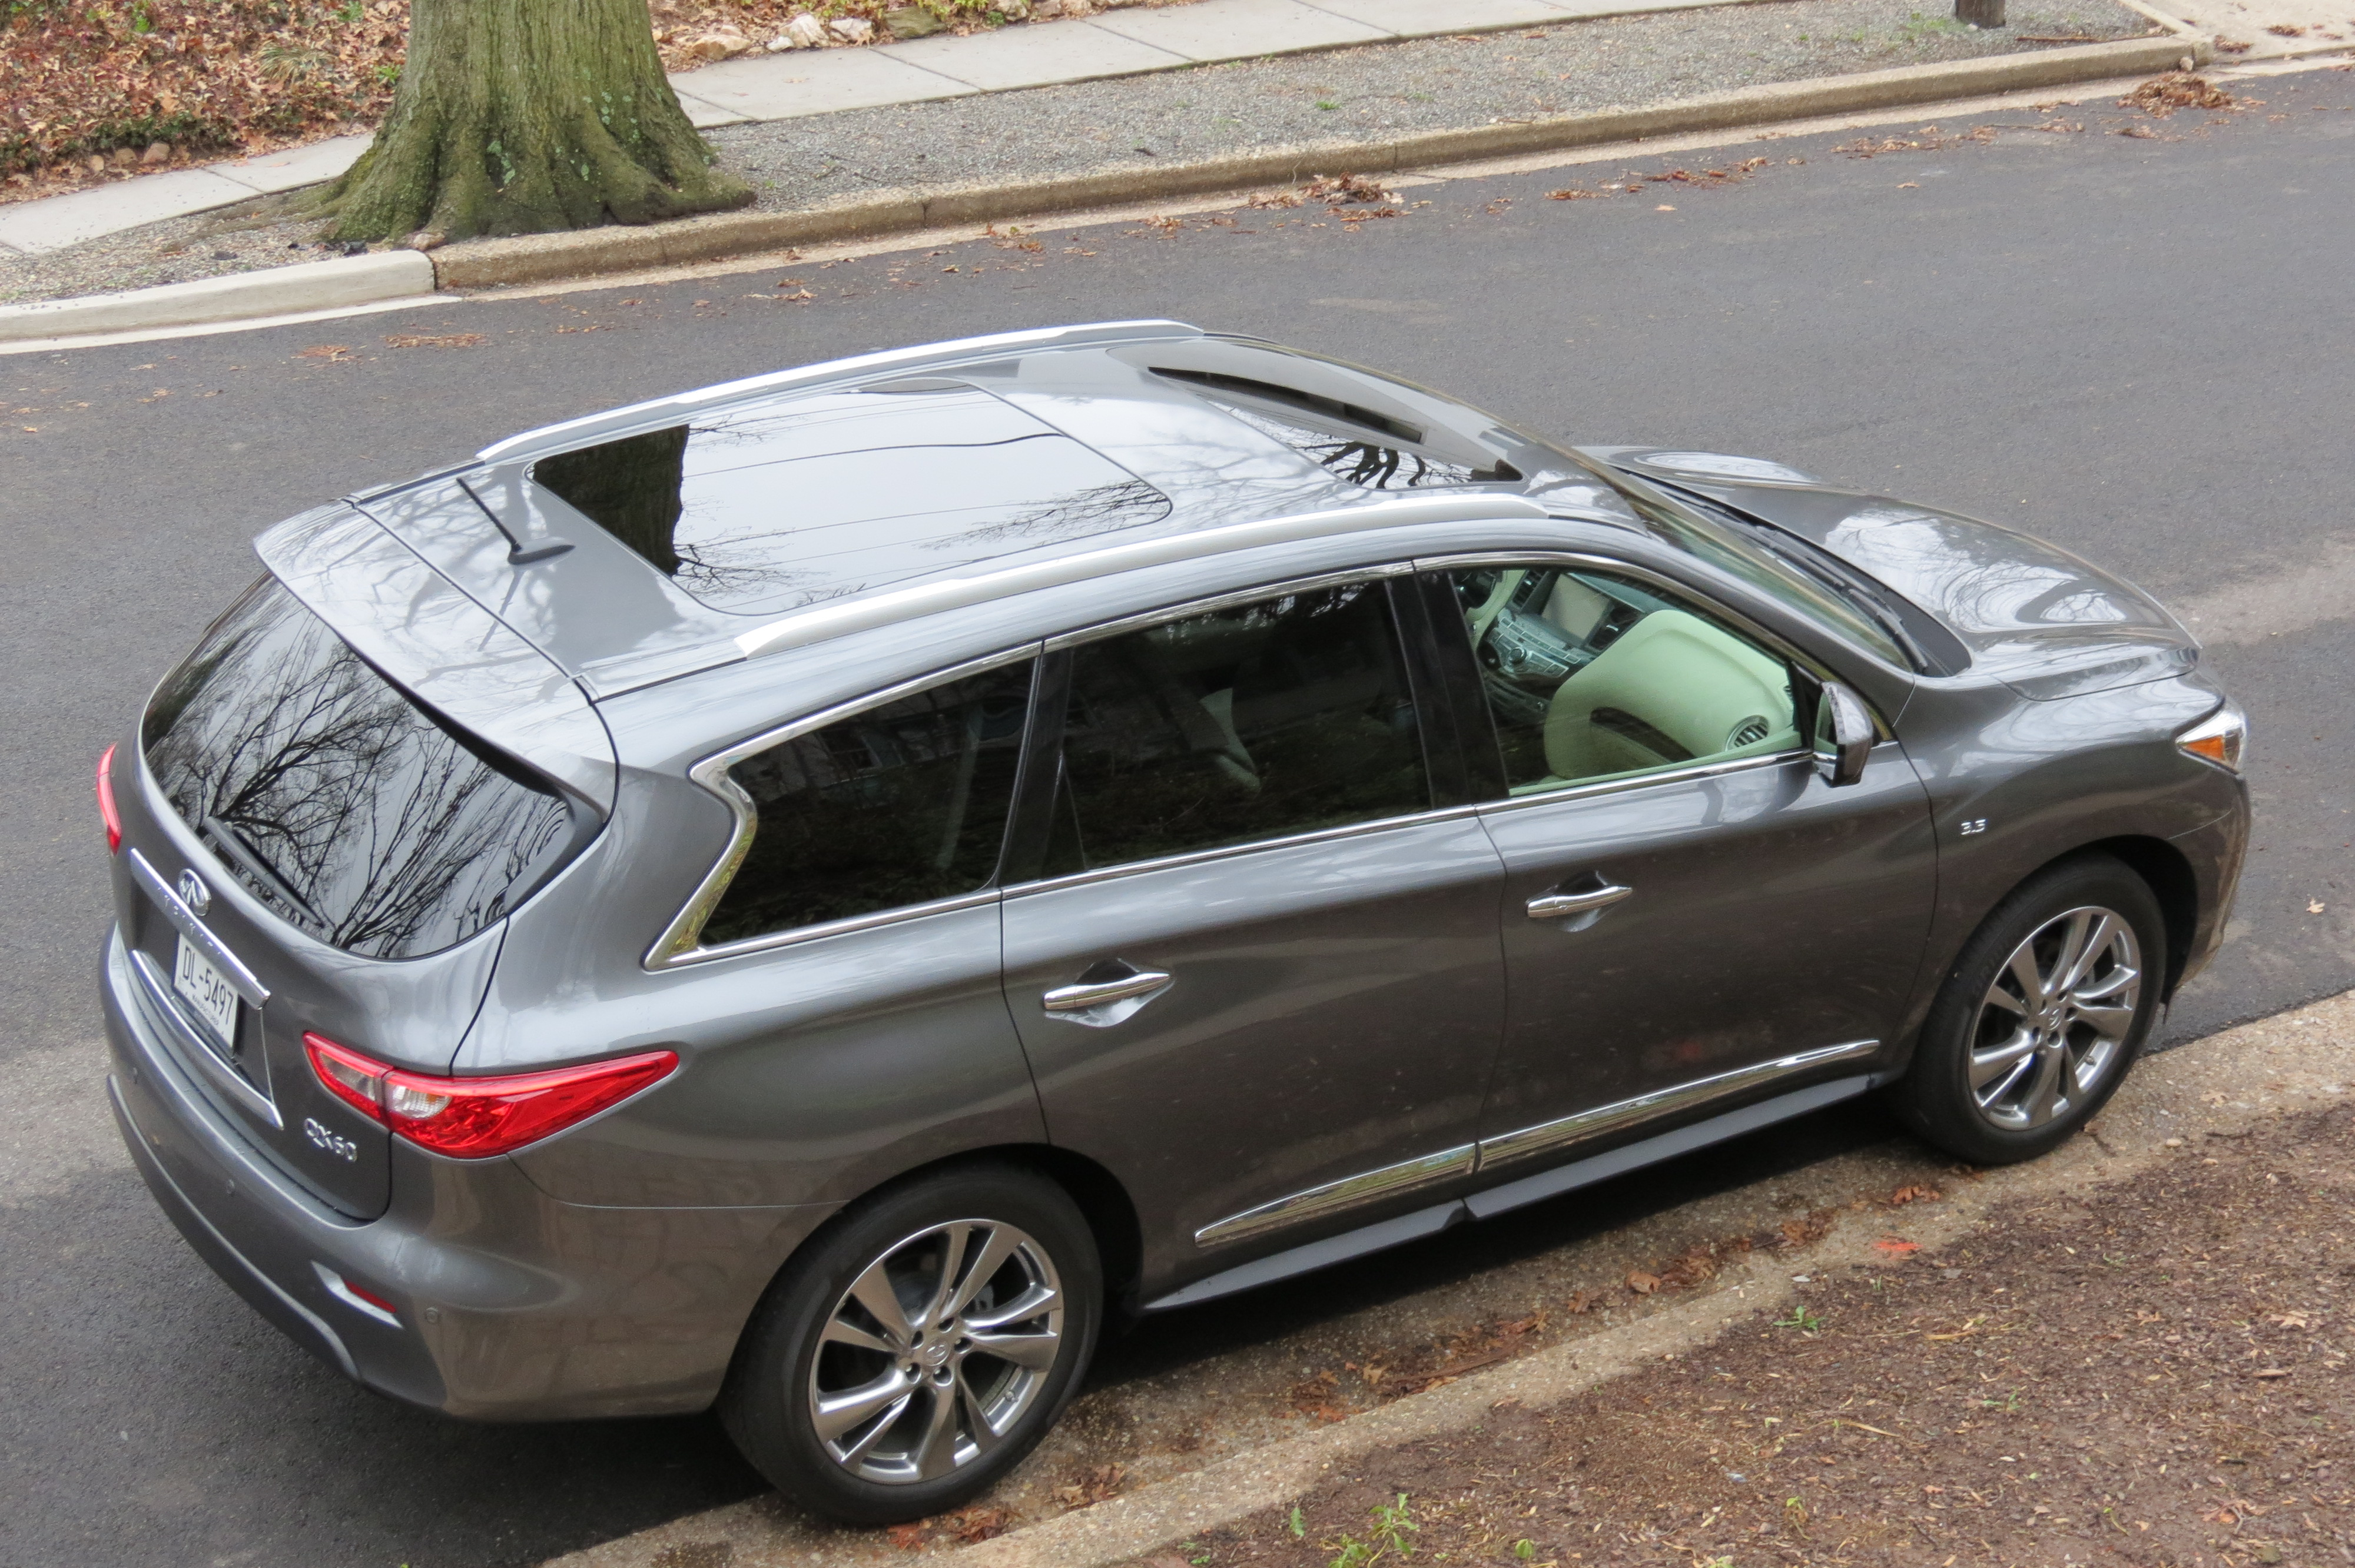 The QX60 features plenty of glass roof as well as interior space.